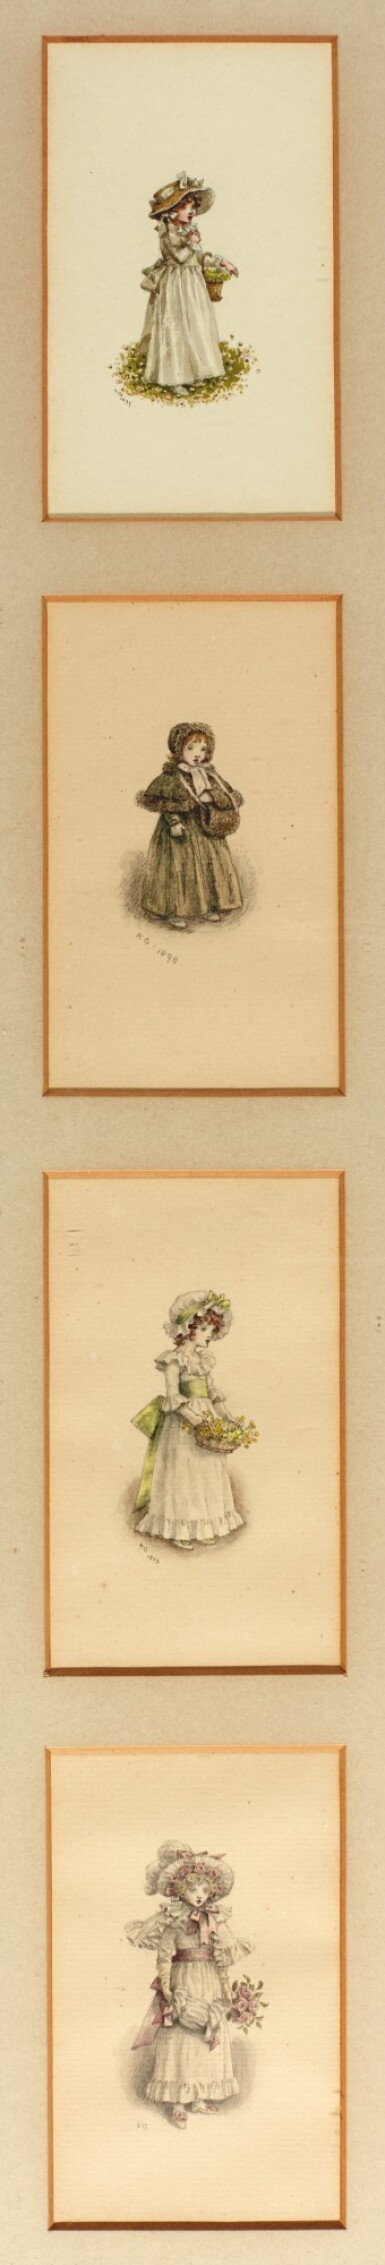 GREENAWAY | Eight miniature portraits, pen and watercolour drawings, 1896-1899